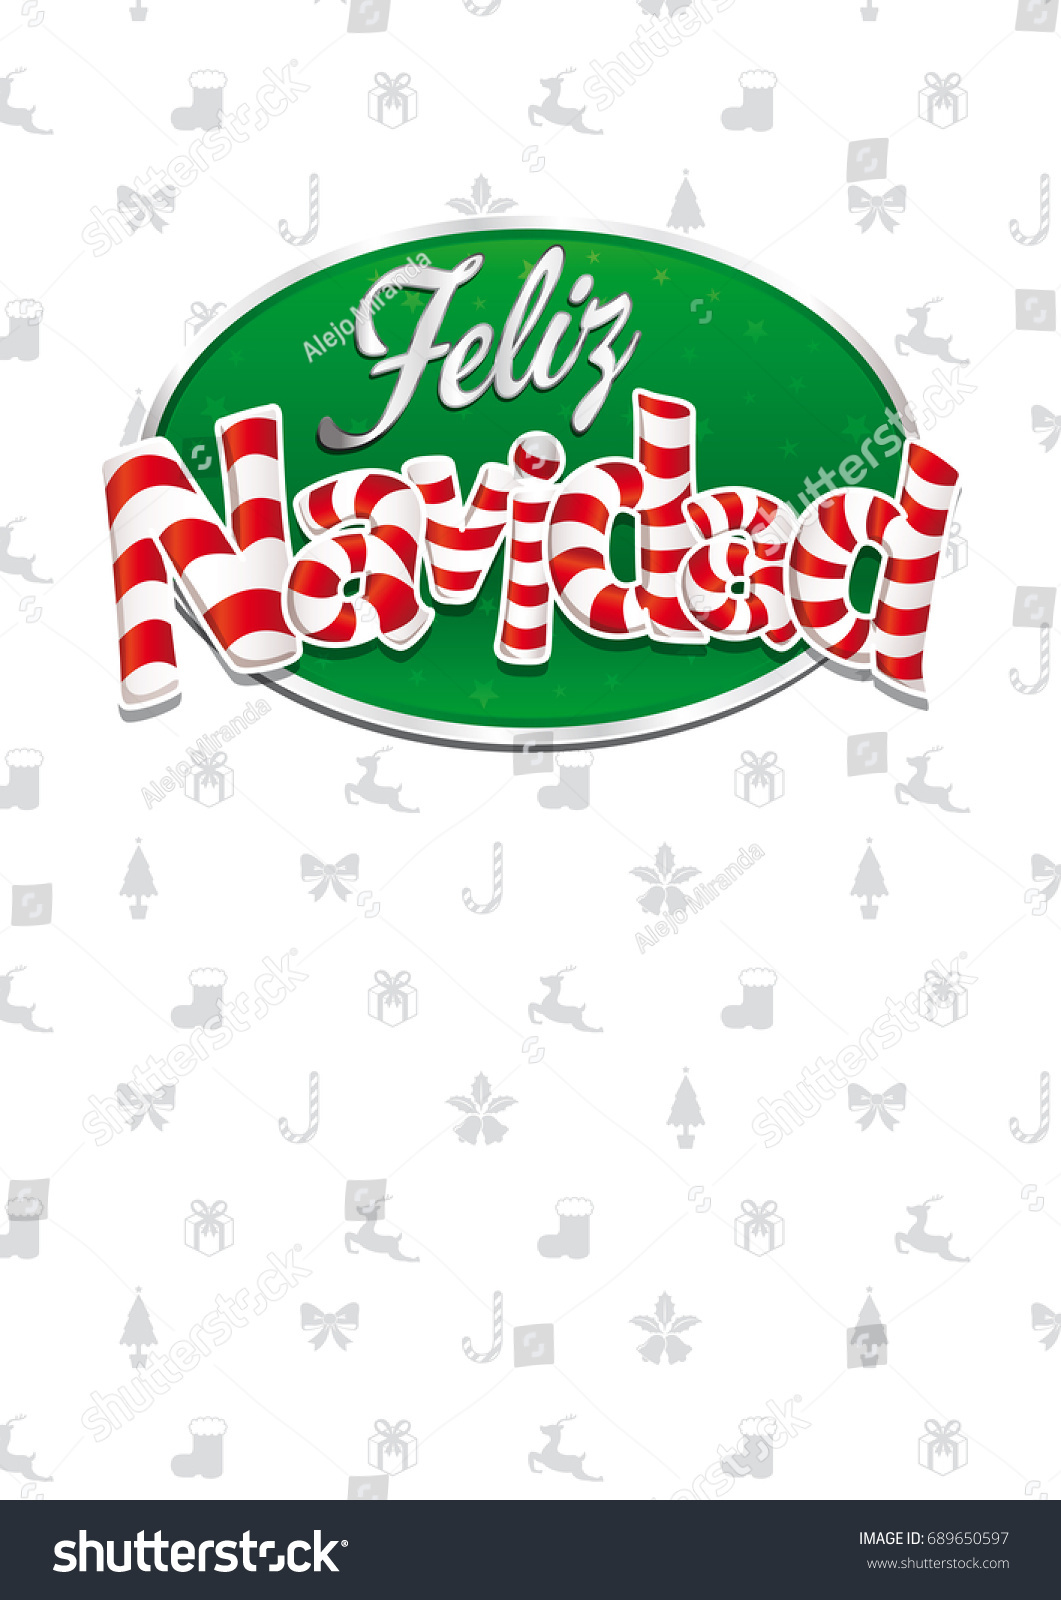 Feliz Navidad Merry Christmas Spanish Language Stock Vector Royalty